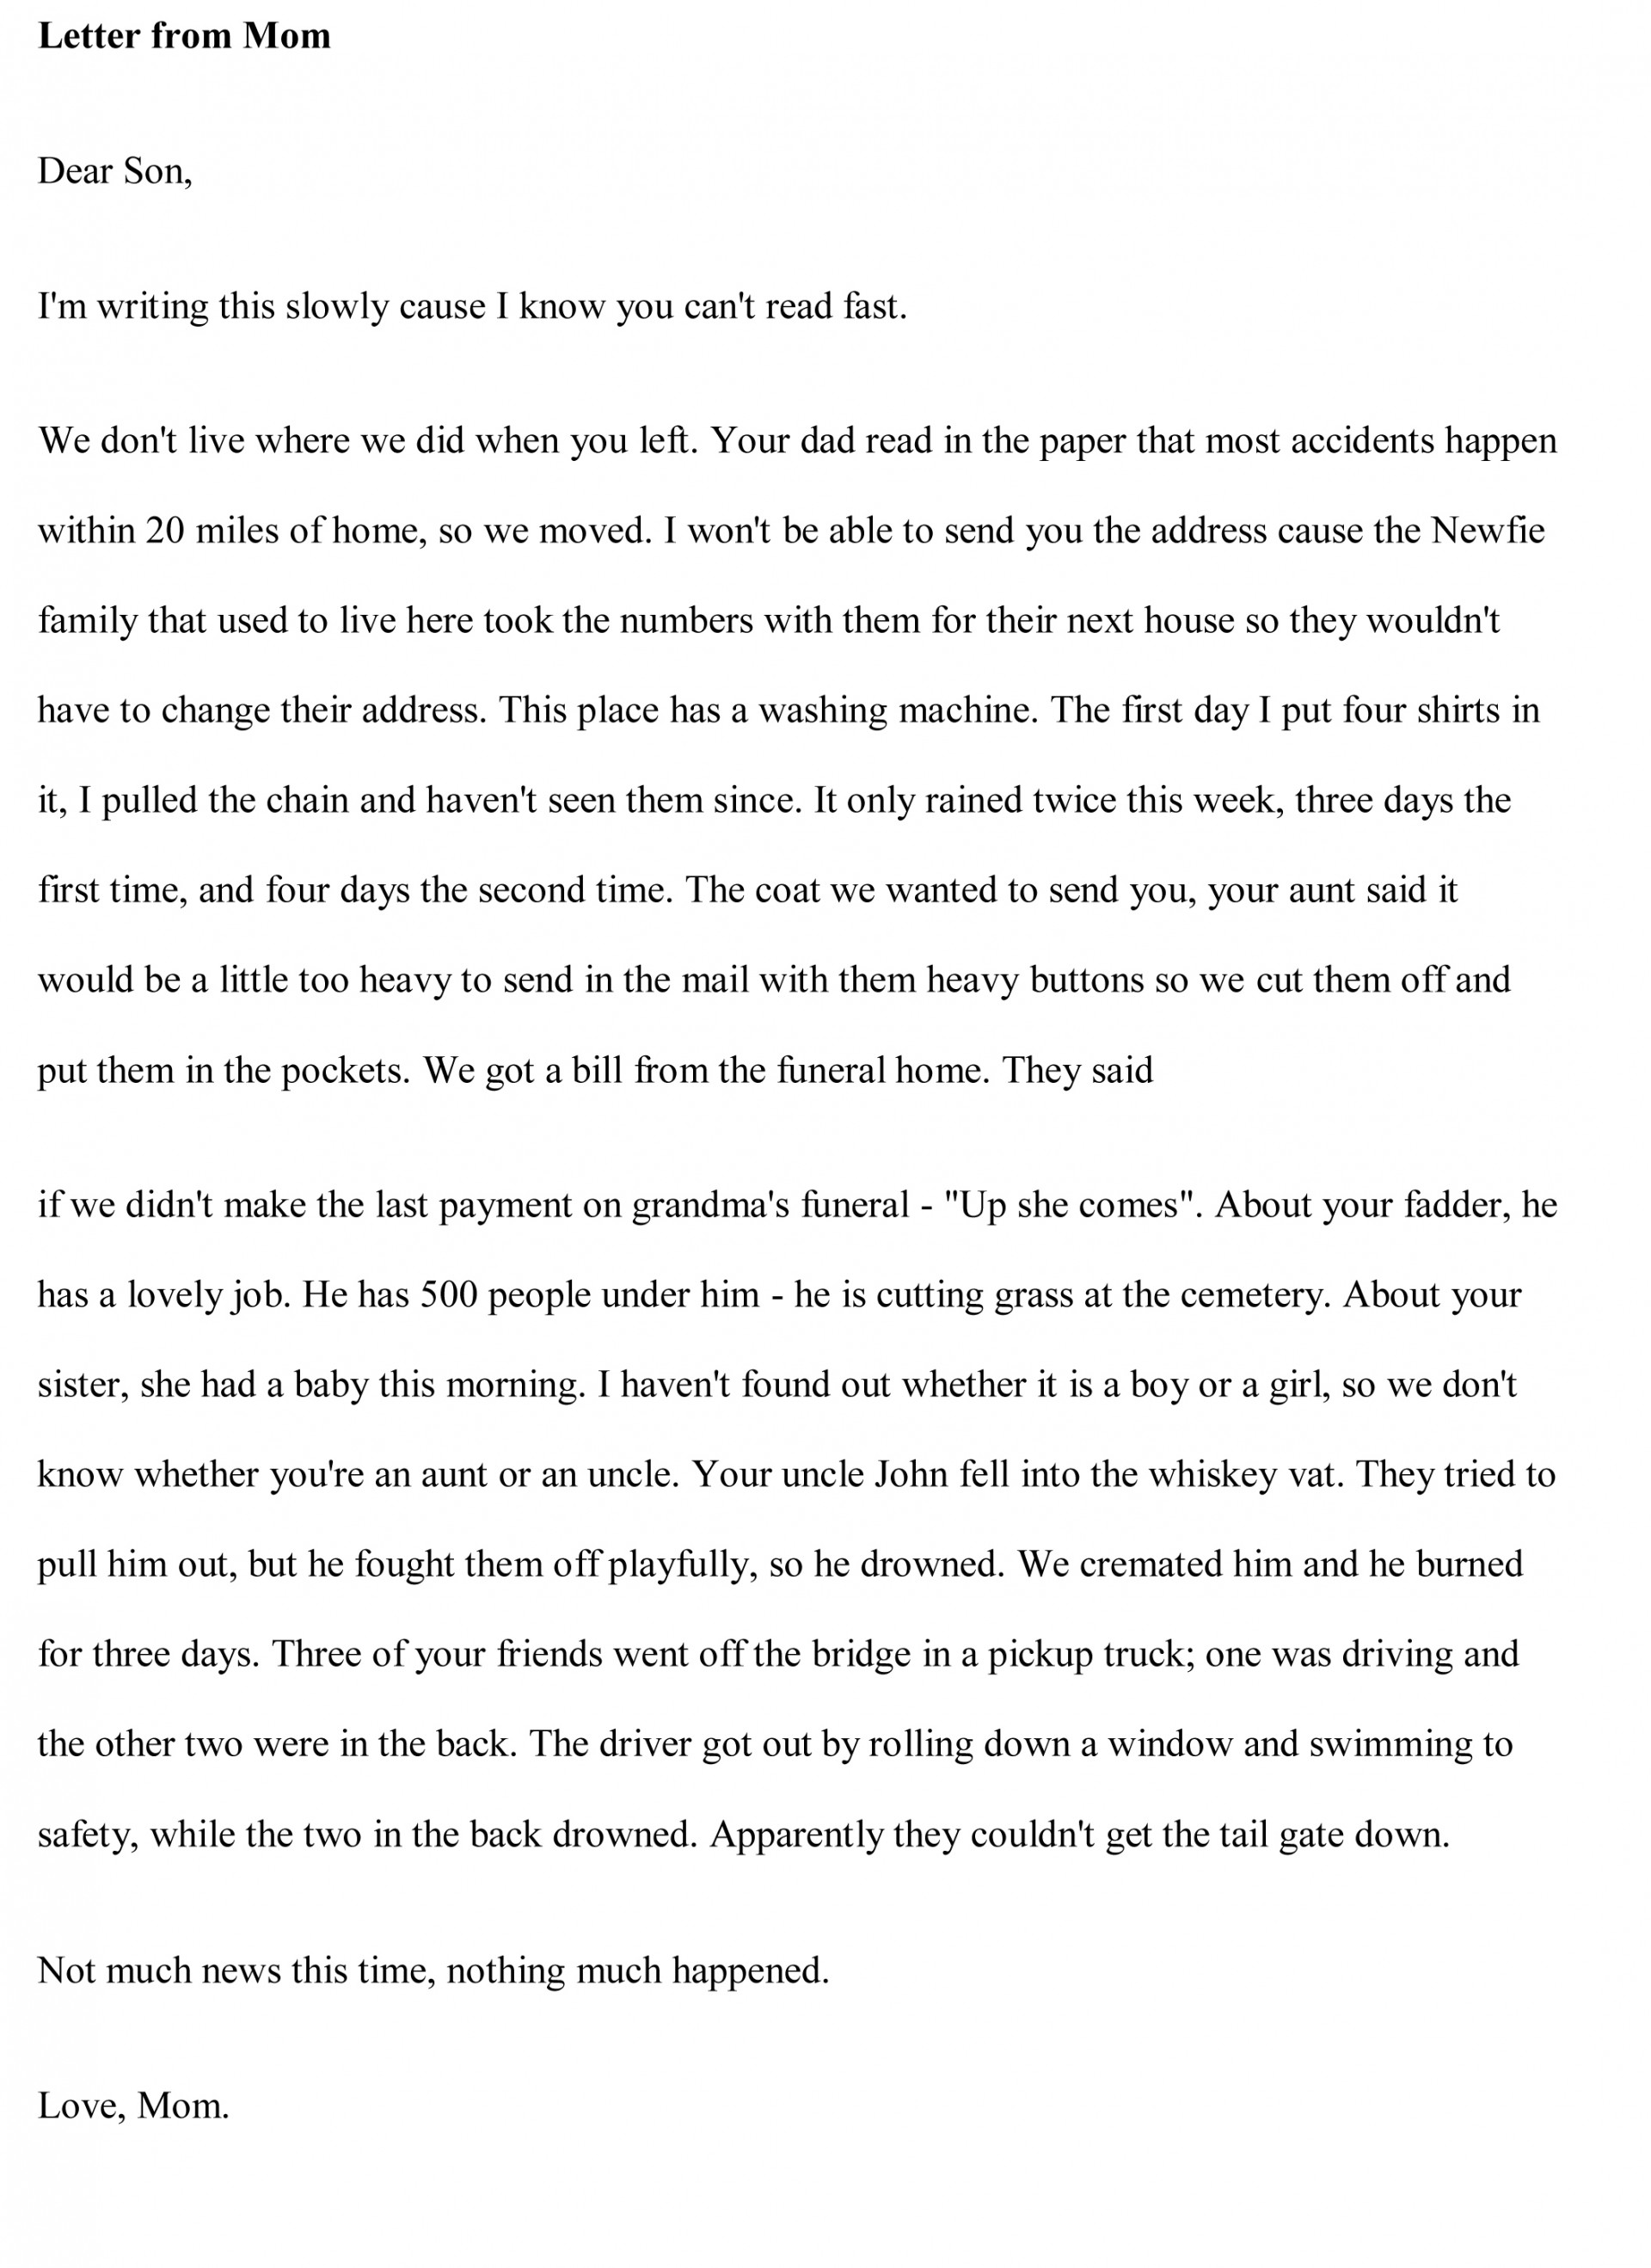 003 Funny Persuasive Essay Topics Free Sample Archaicawful For High School Students Speech About Relationships 1920